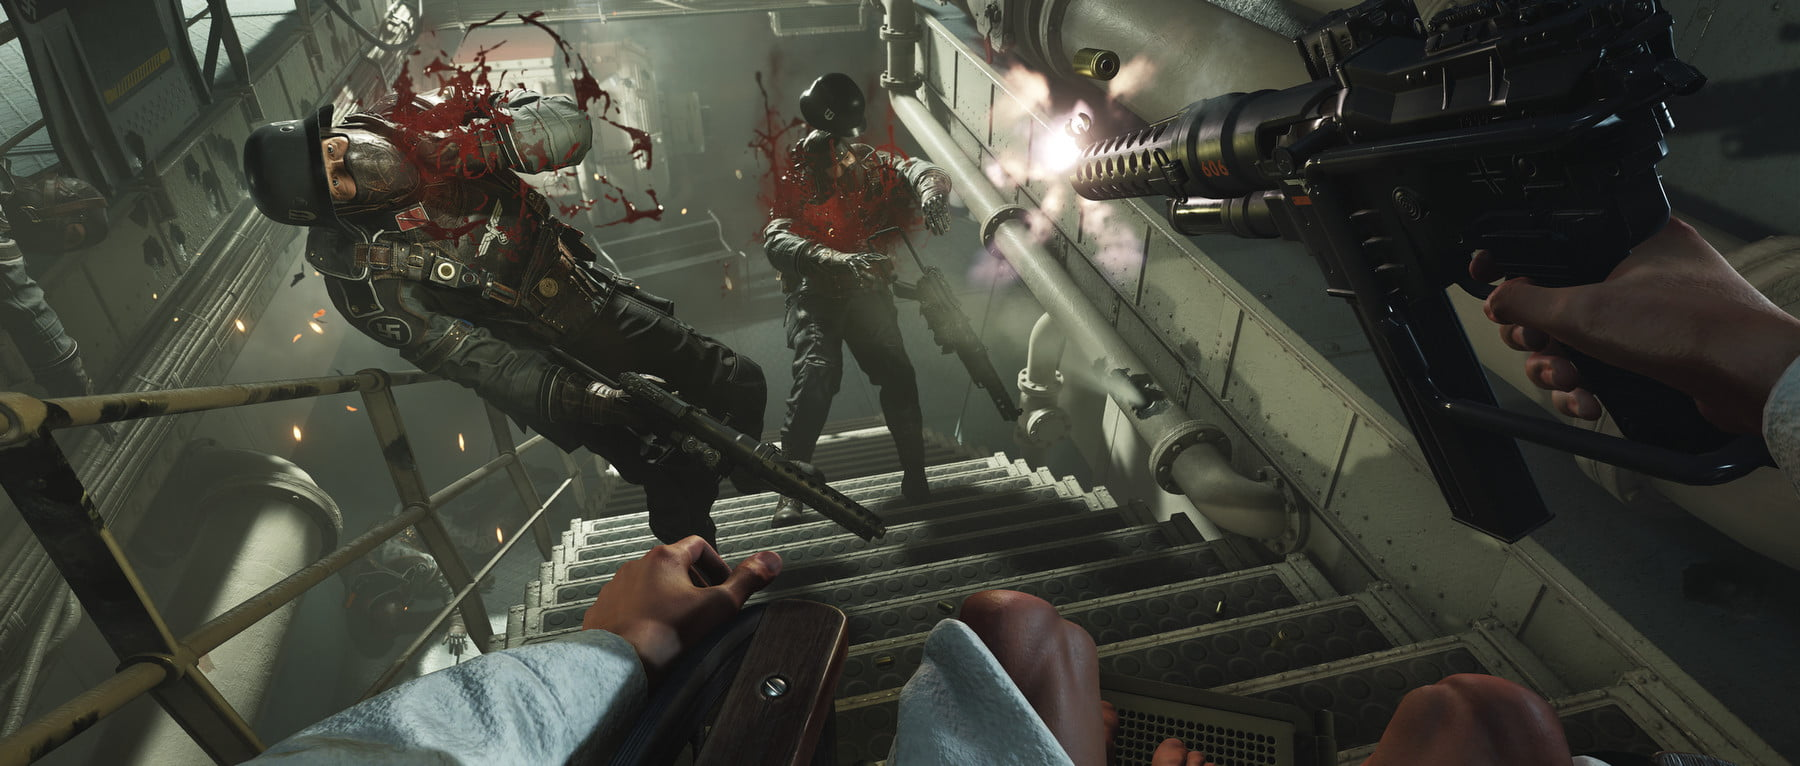 calendrier jeu vidéo octobre Wolfenstein II The New Colossus